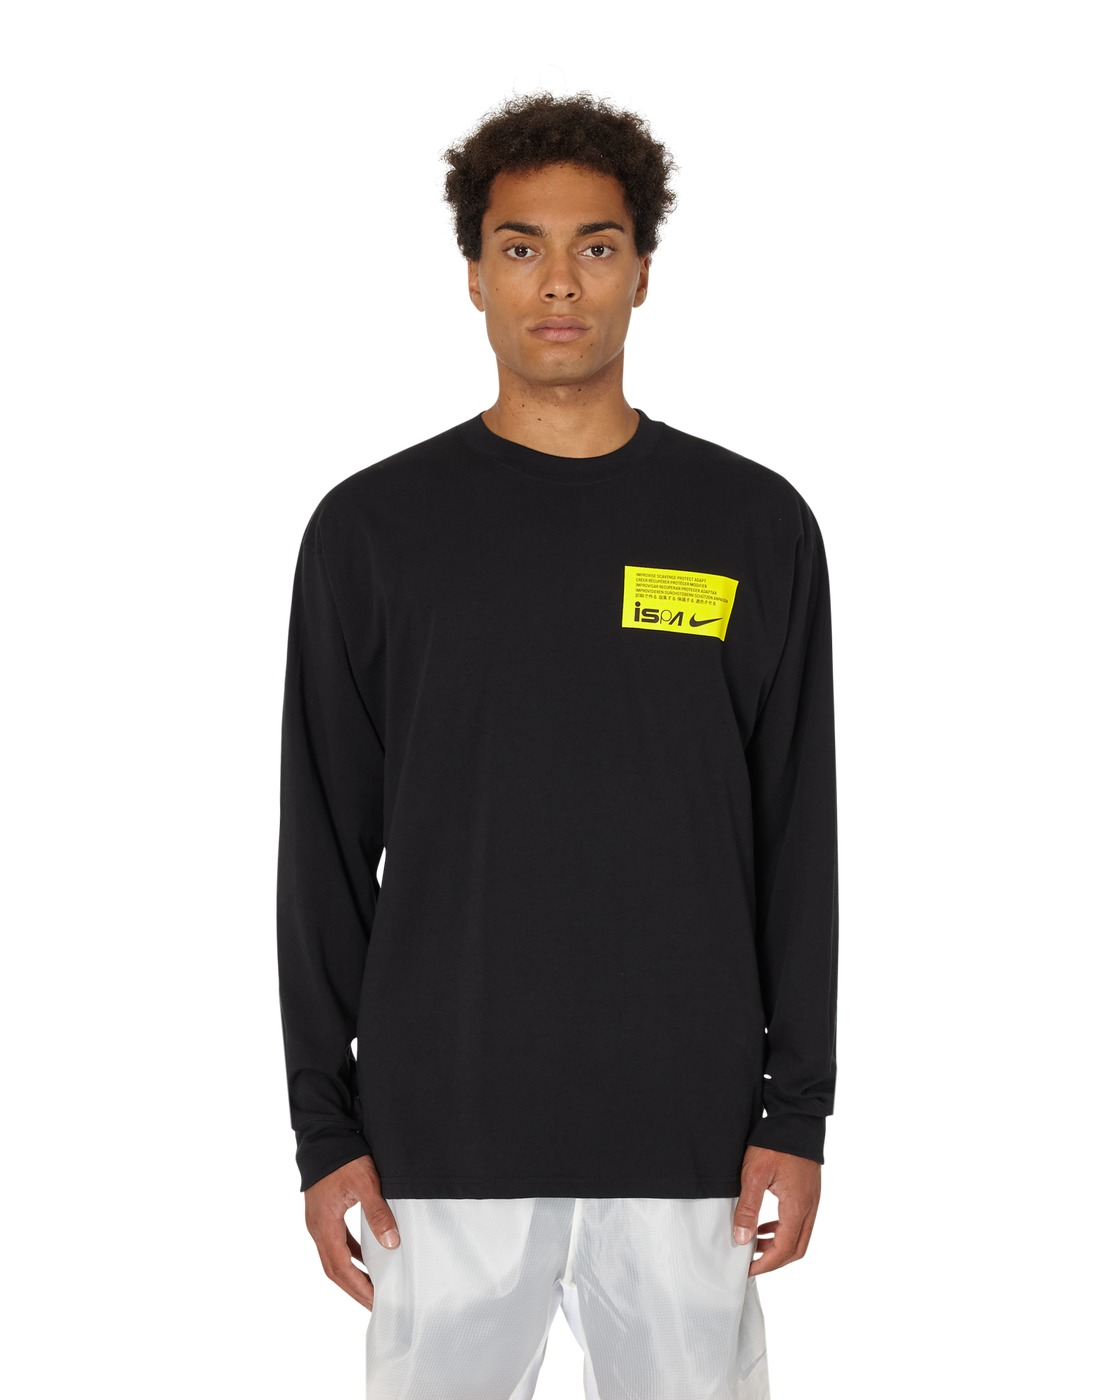 Nike Special Project Nrg Ispa Long Sleeve T Shirt Black/Opti Yellow